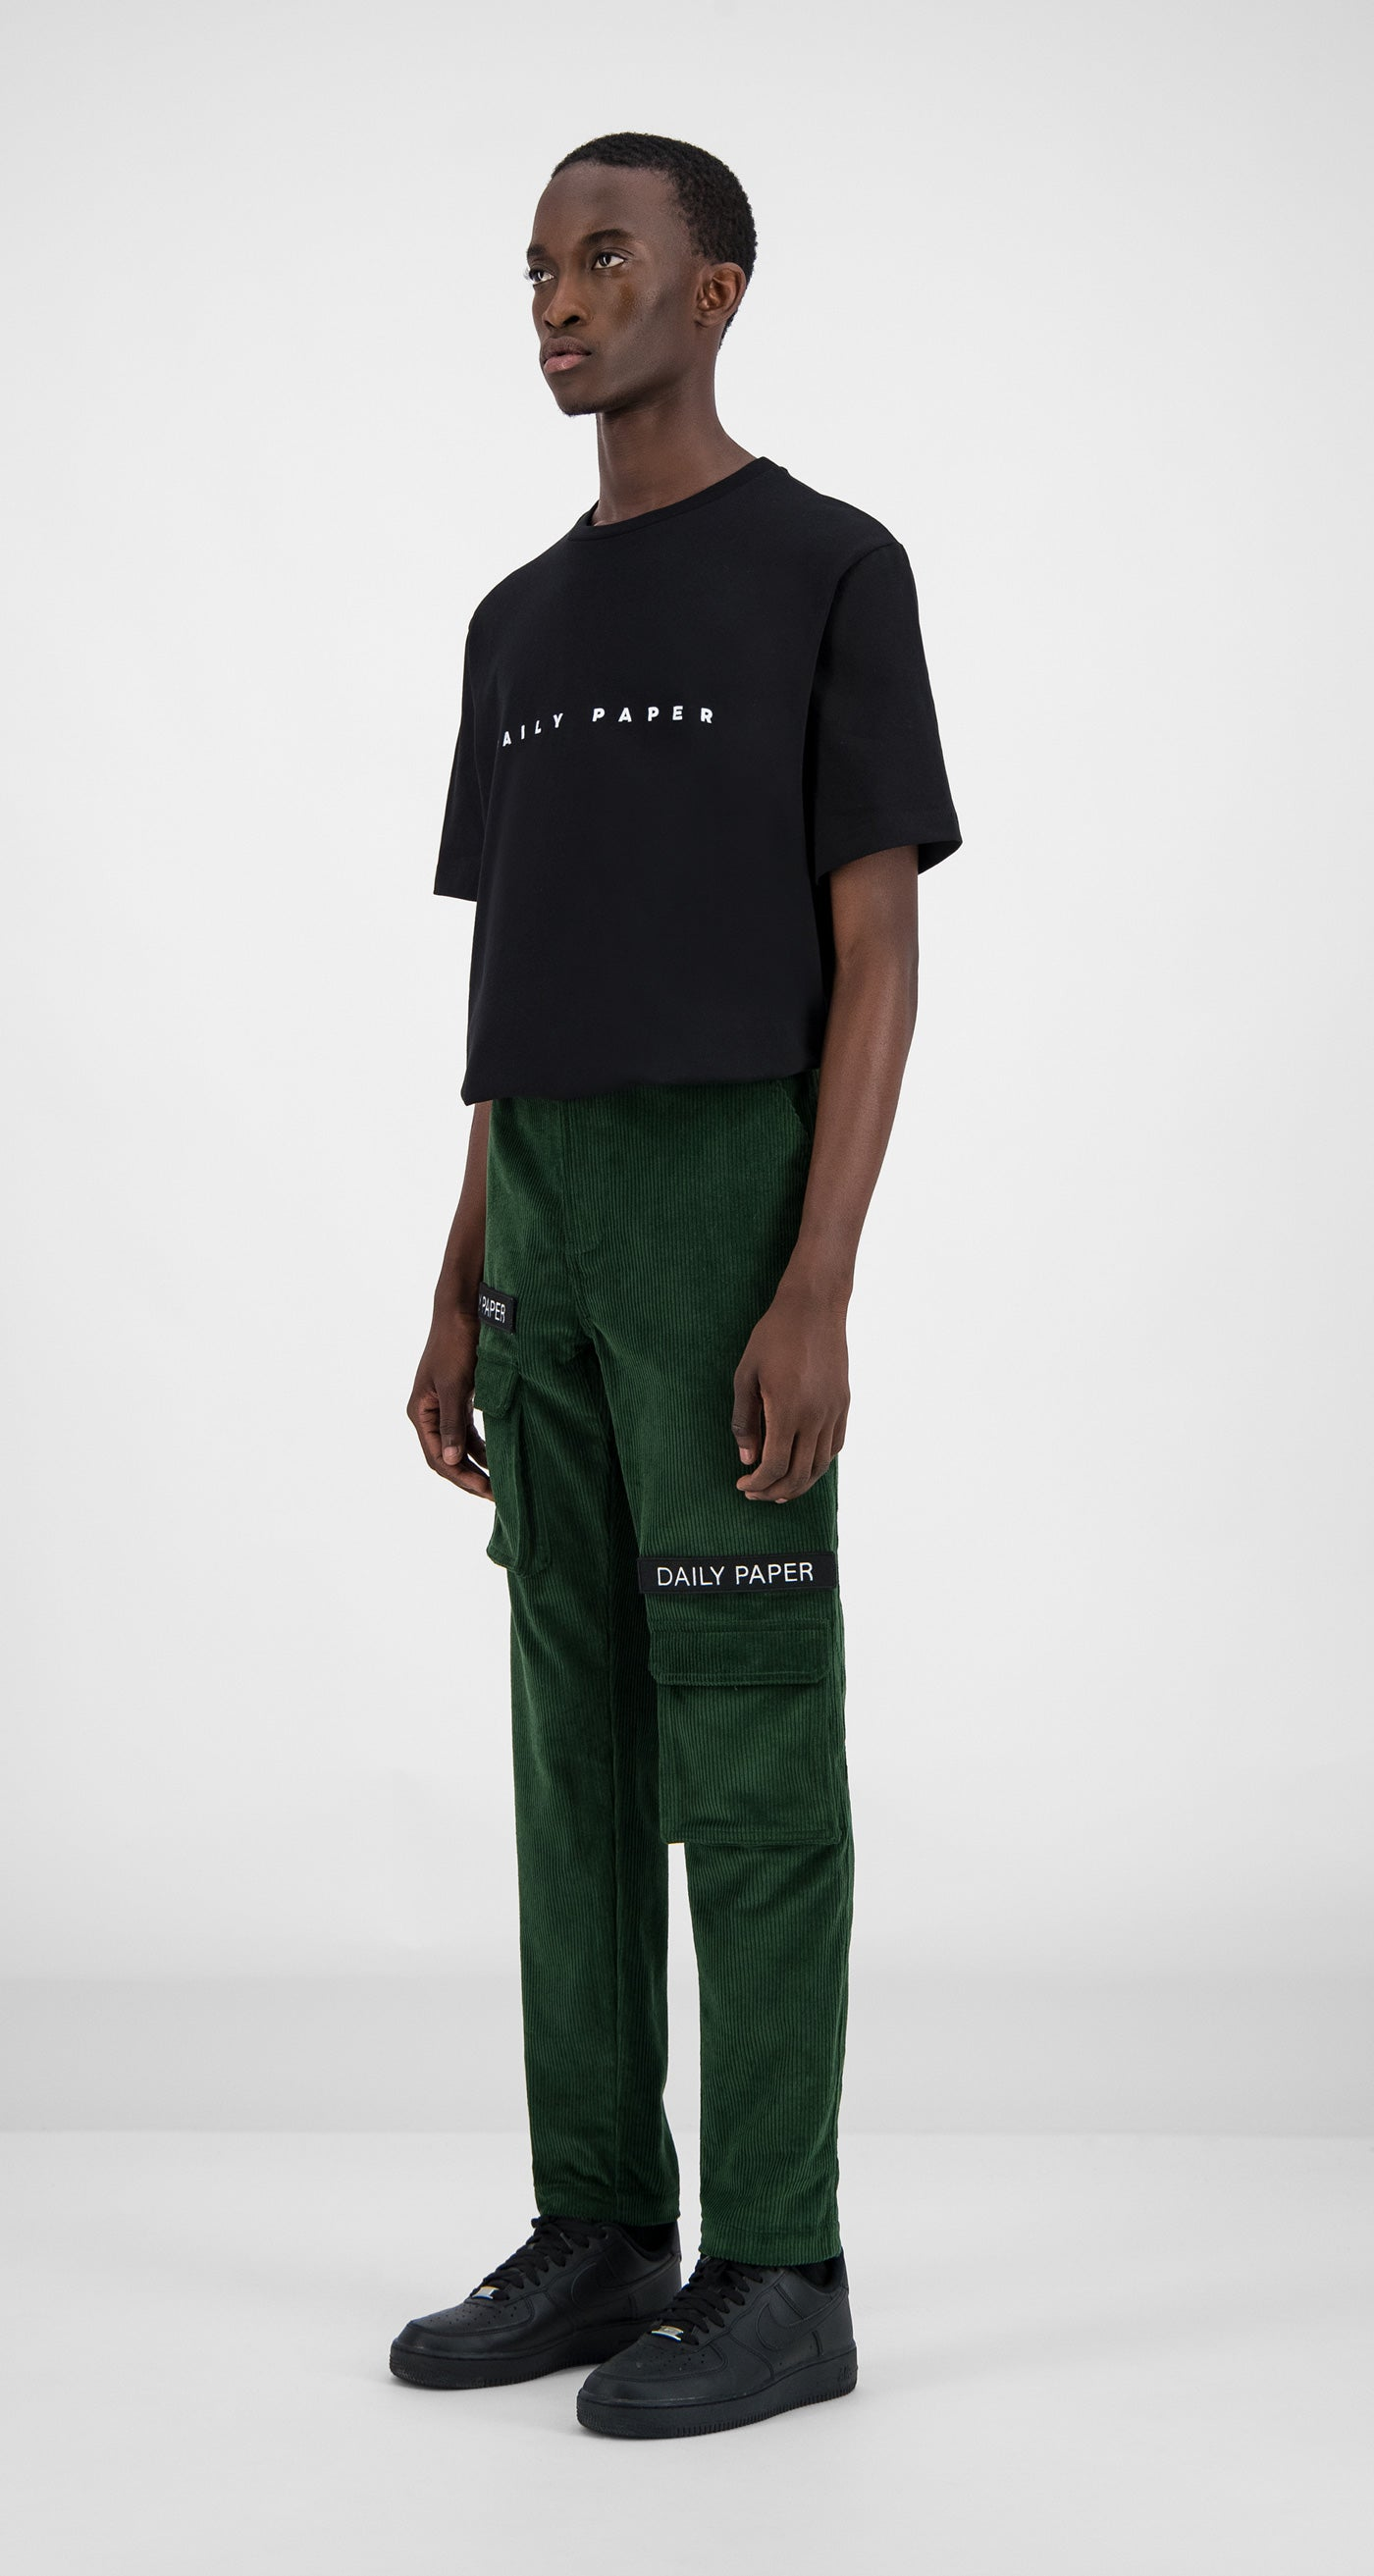 Daily Paper - Green Corduroy Cargo Pants Men